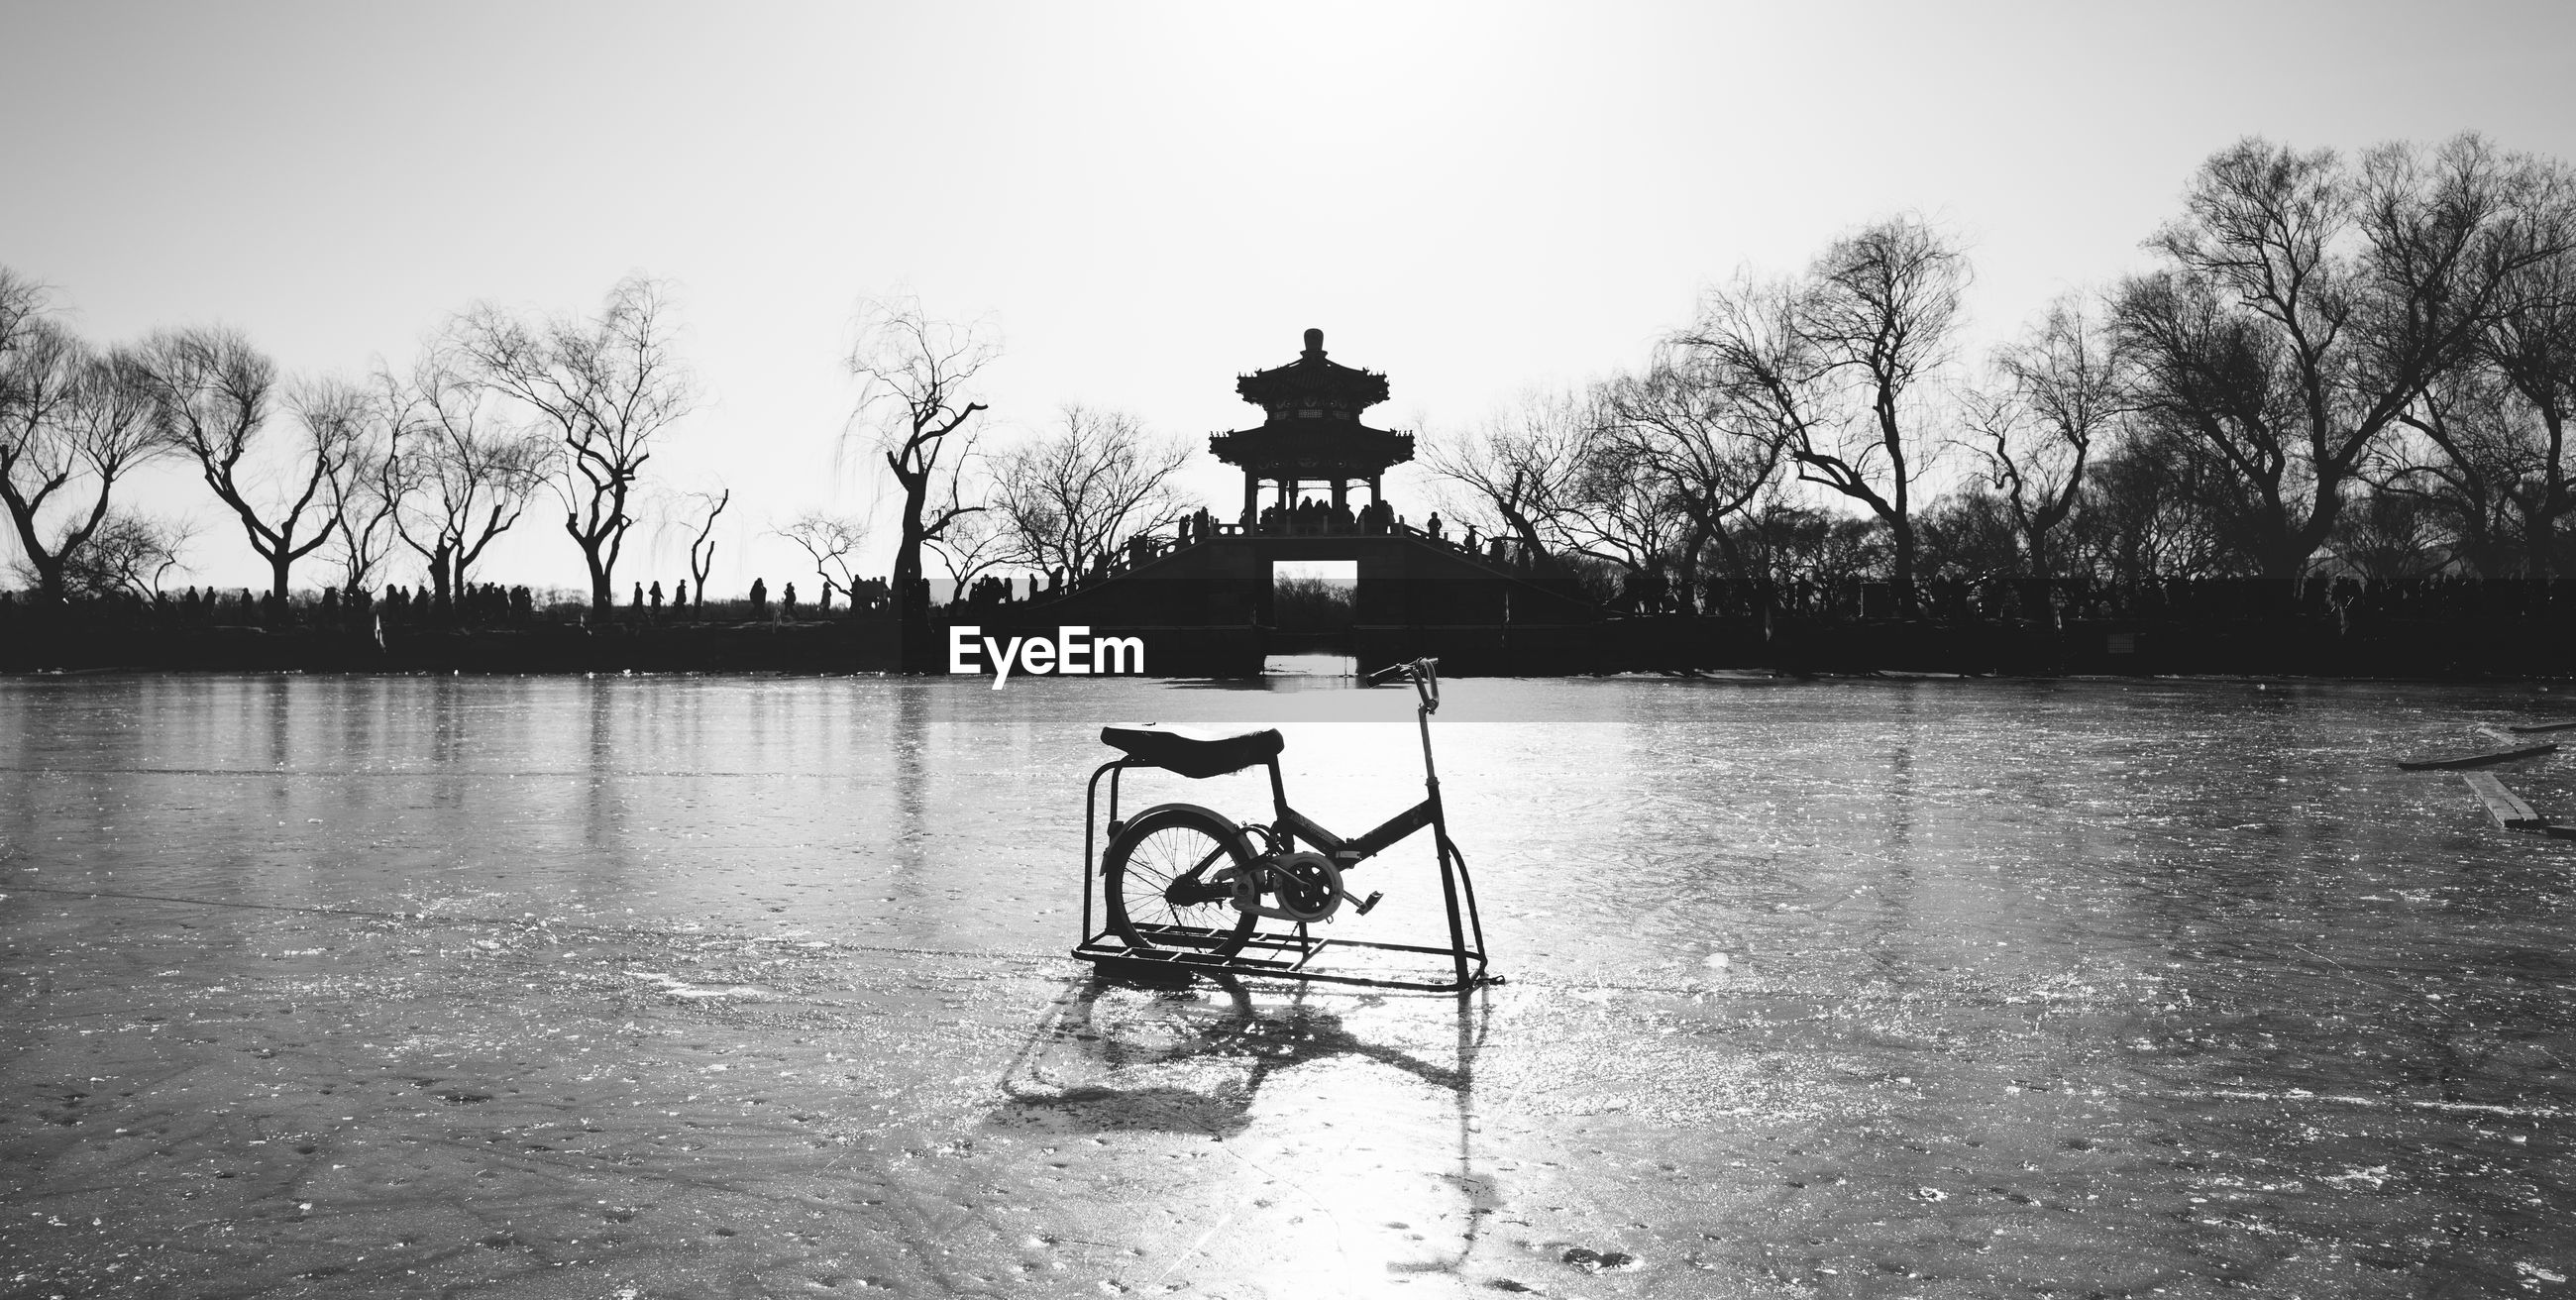 Bicycle on frozen lake against silhouette bridge